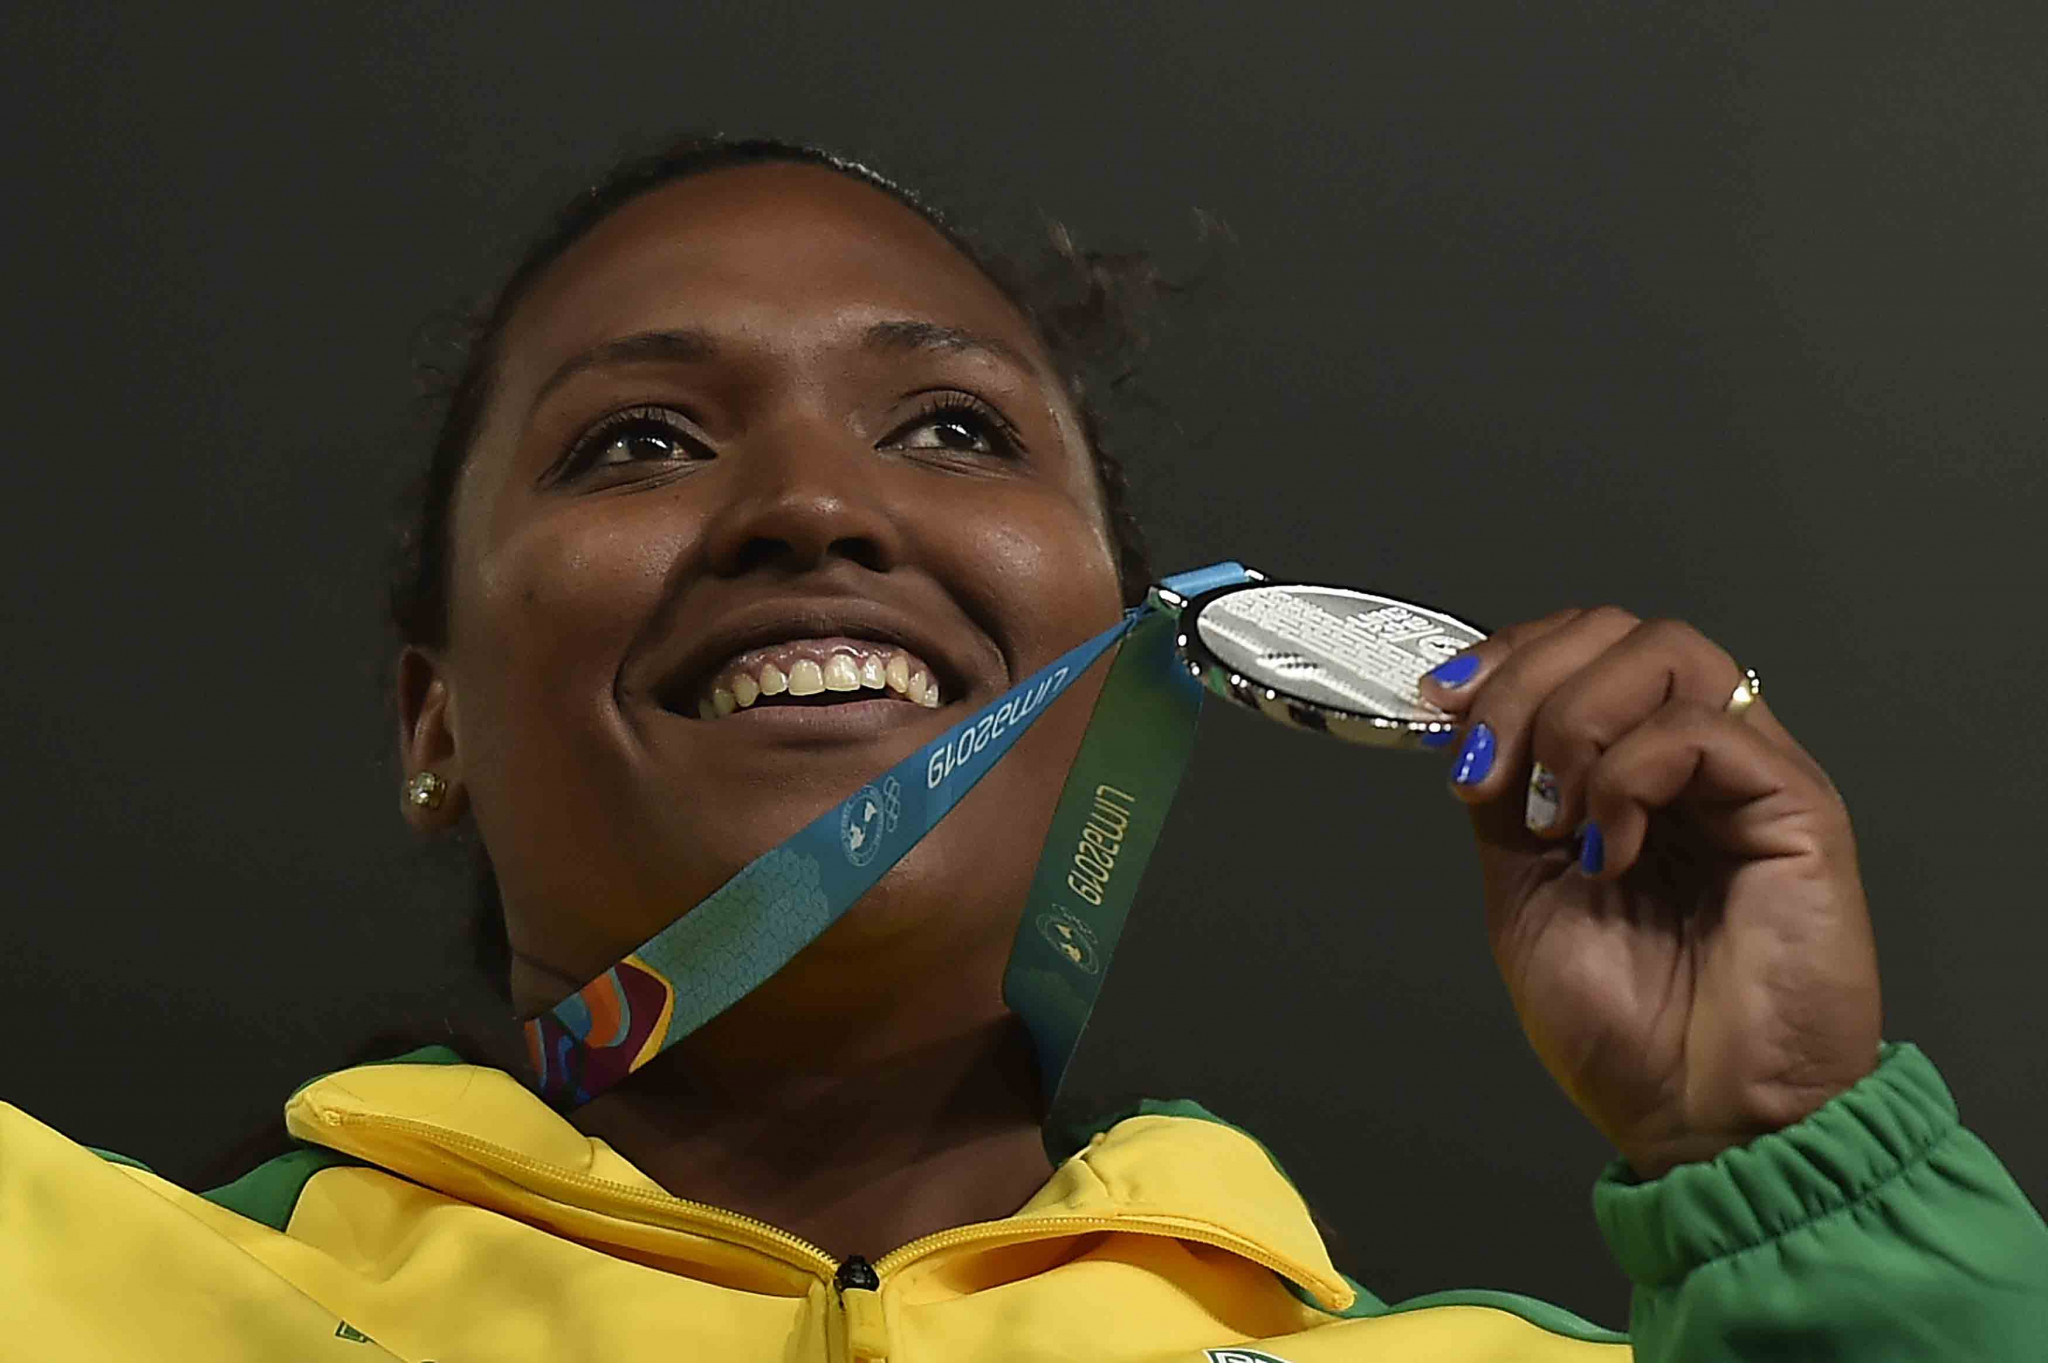 Andressa Oliveira de Morais could lose her Lima 2019 silver medal ©Getty Images